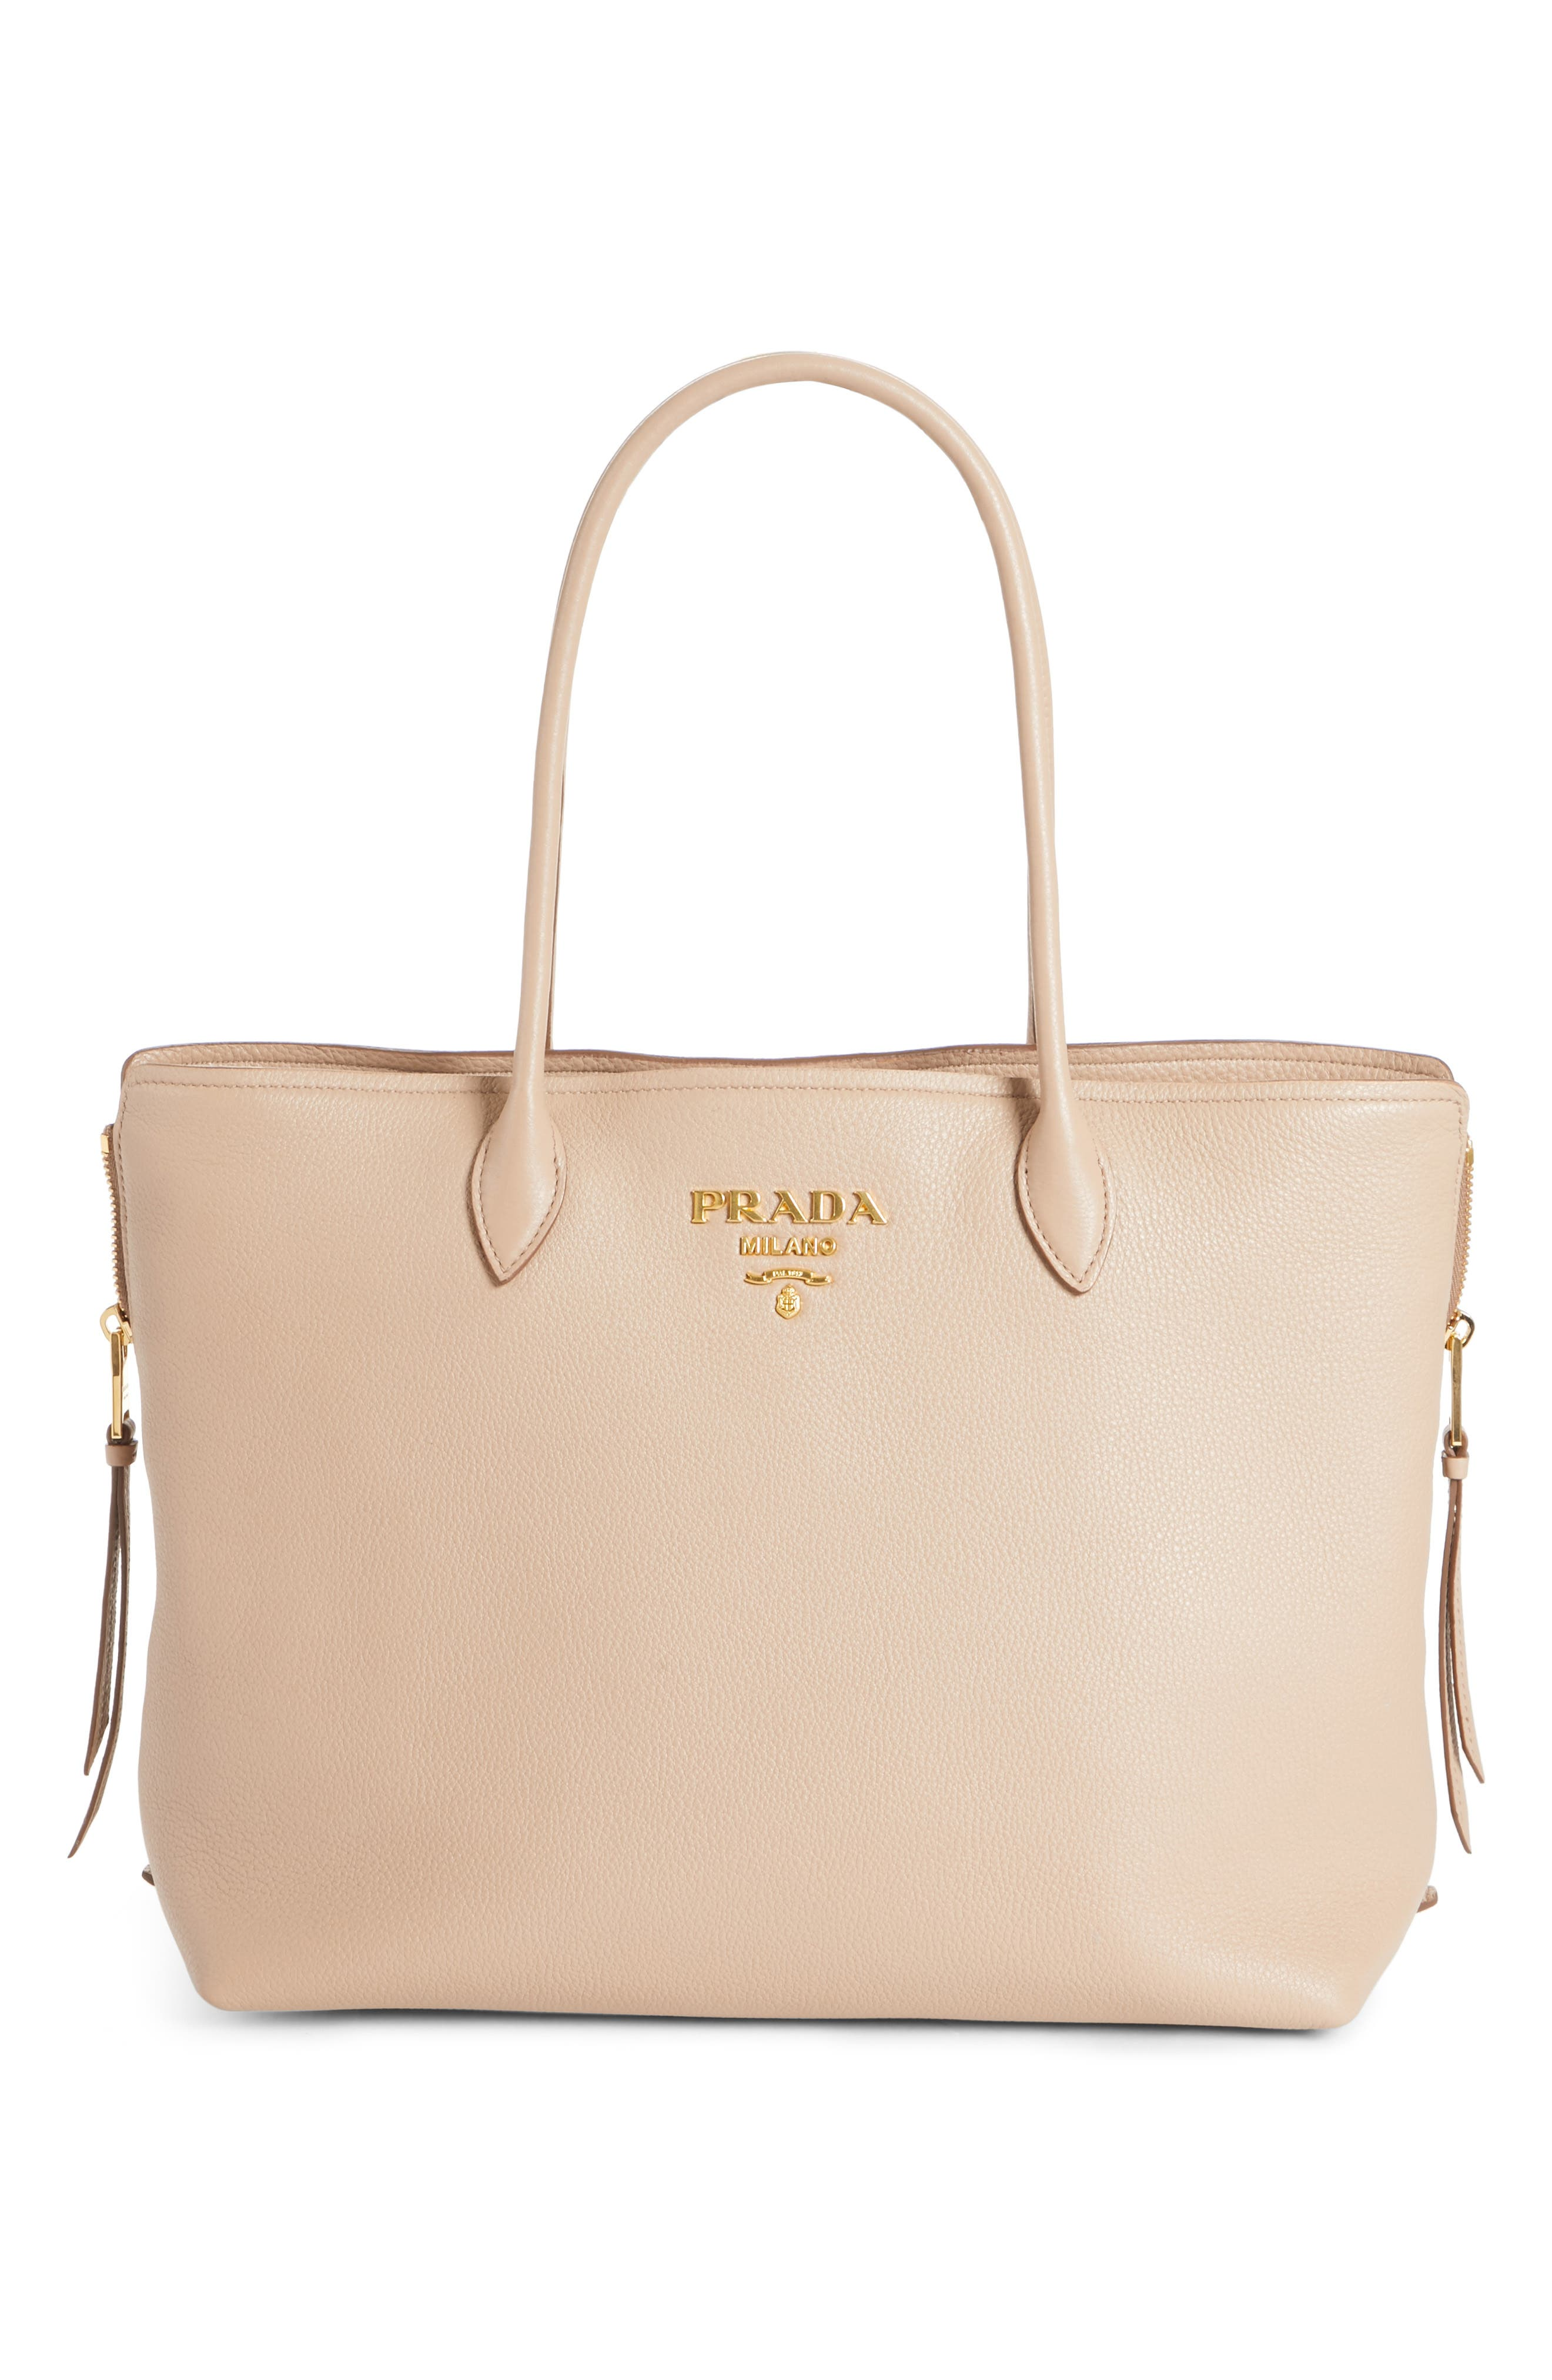 71d114446ce713 ... best price prada tote bags for women leather coated canvas neoprene  nordstrom 37135 f748e